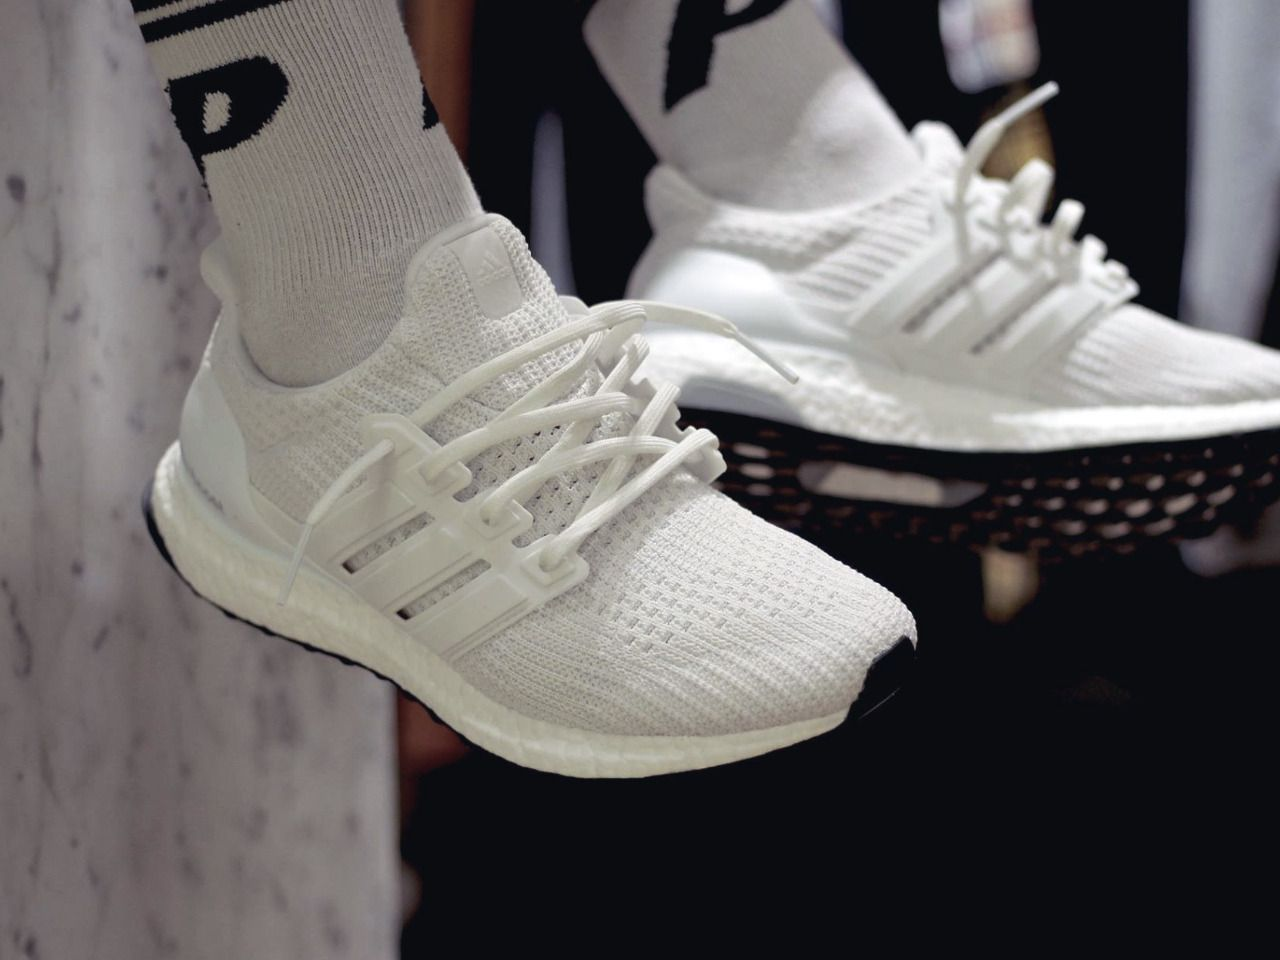 newest b0486 c23c0 Adidas Ultra Boost 4.0 - Triple White - 2017 by Cerje Jack-l Buy  viaGlamour